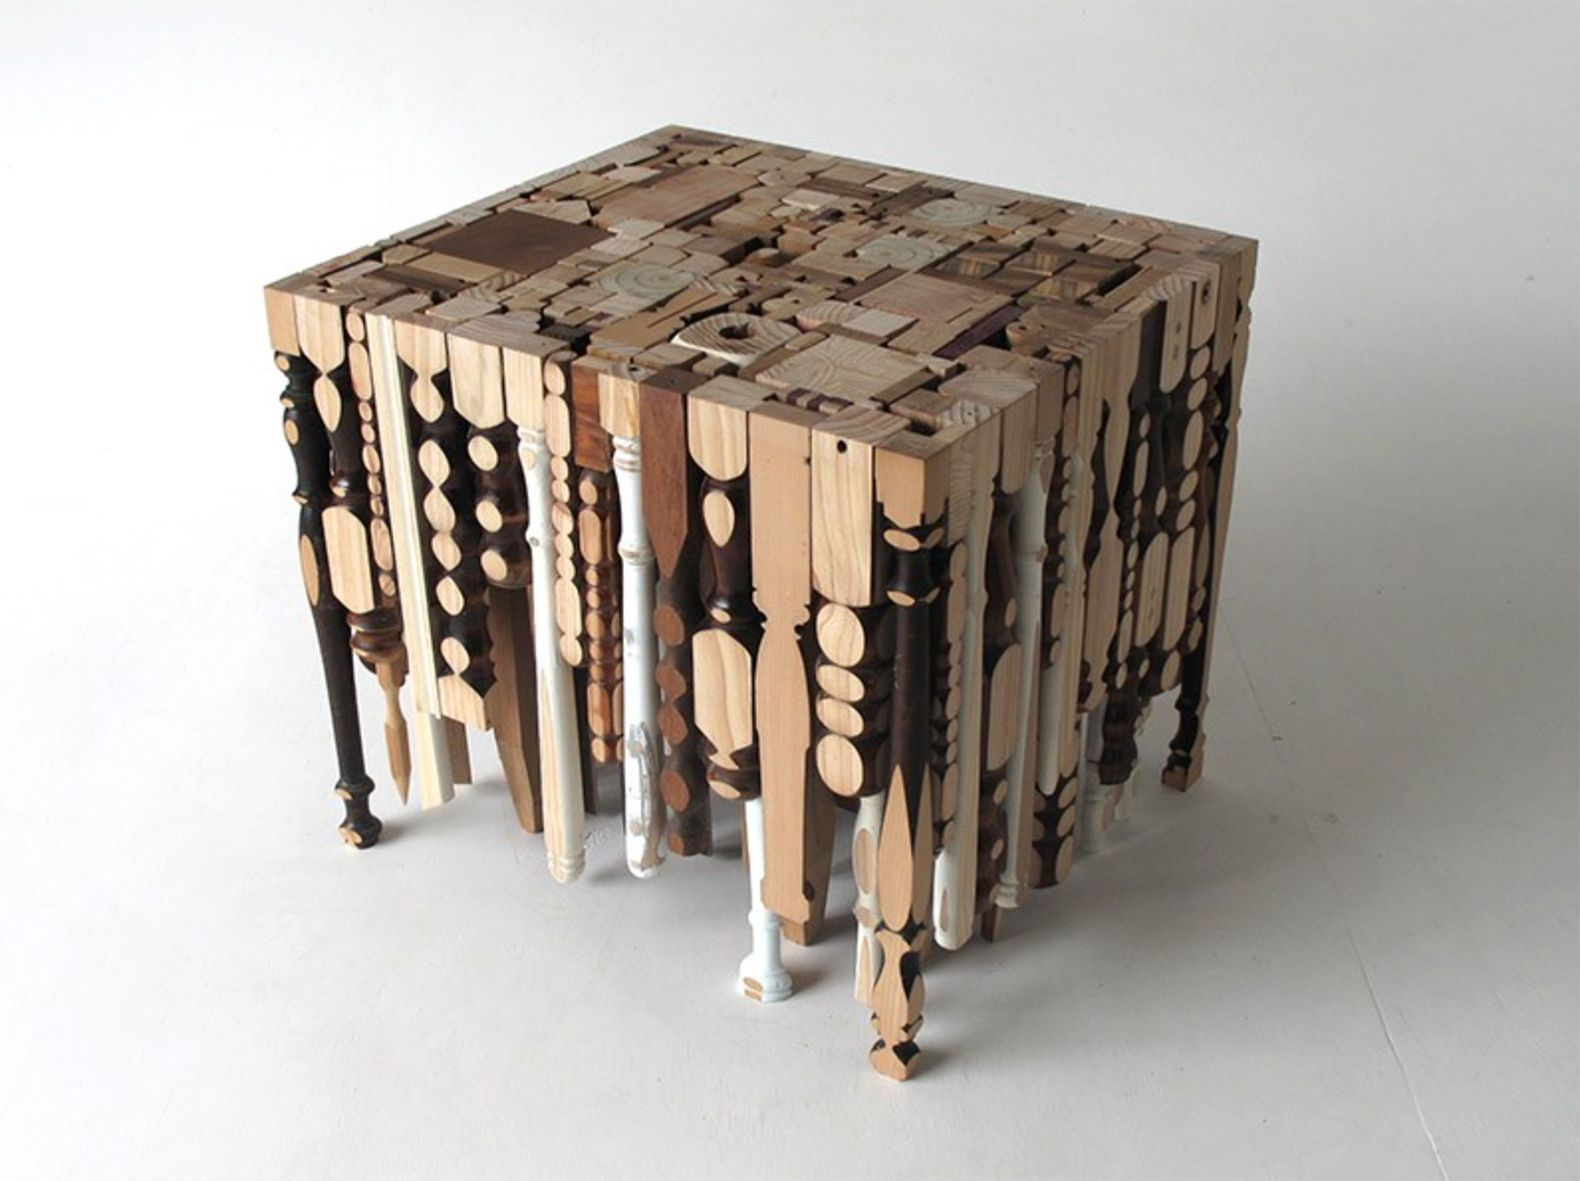 Ordinaire Eking It Out Table Is Made Out Of Recycled Table Legs